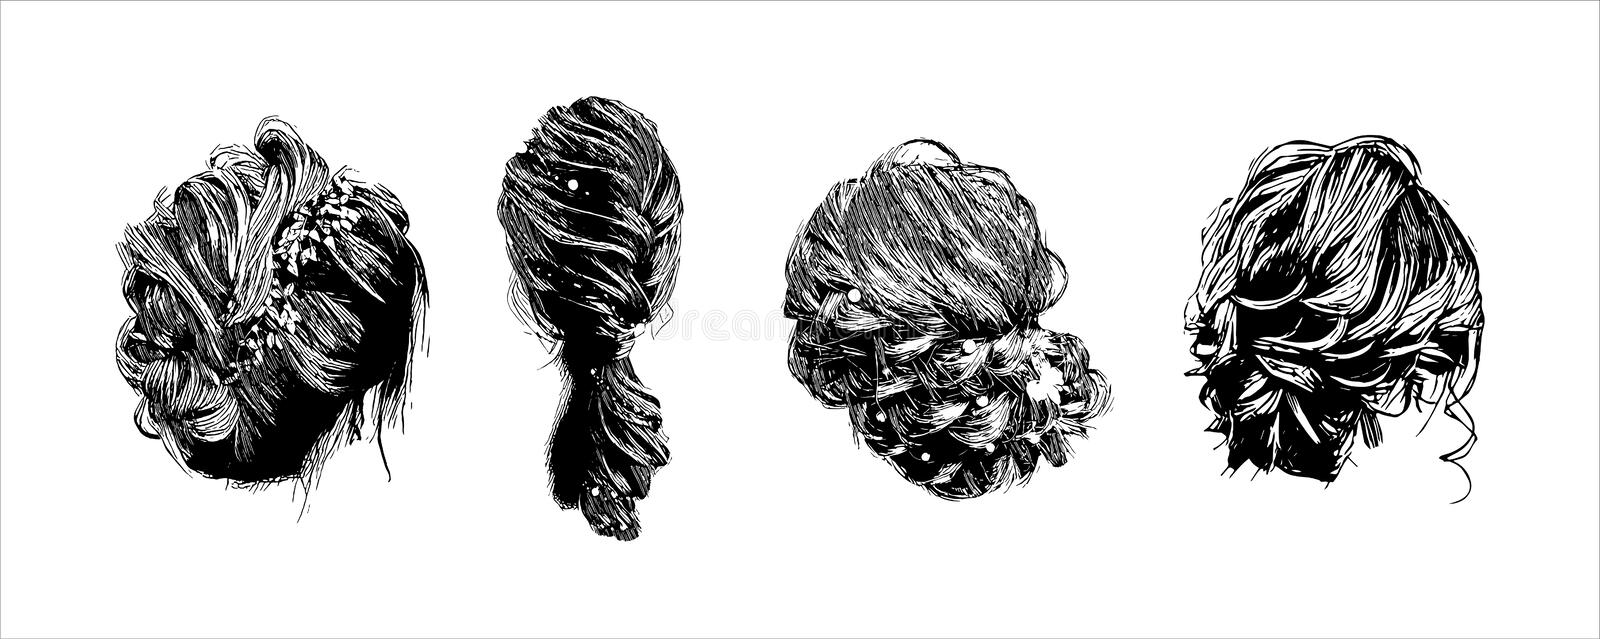 Vector elegant vintage retro woman wave hairstyle hand drawn illustration isolated on white background vector illustration